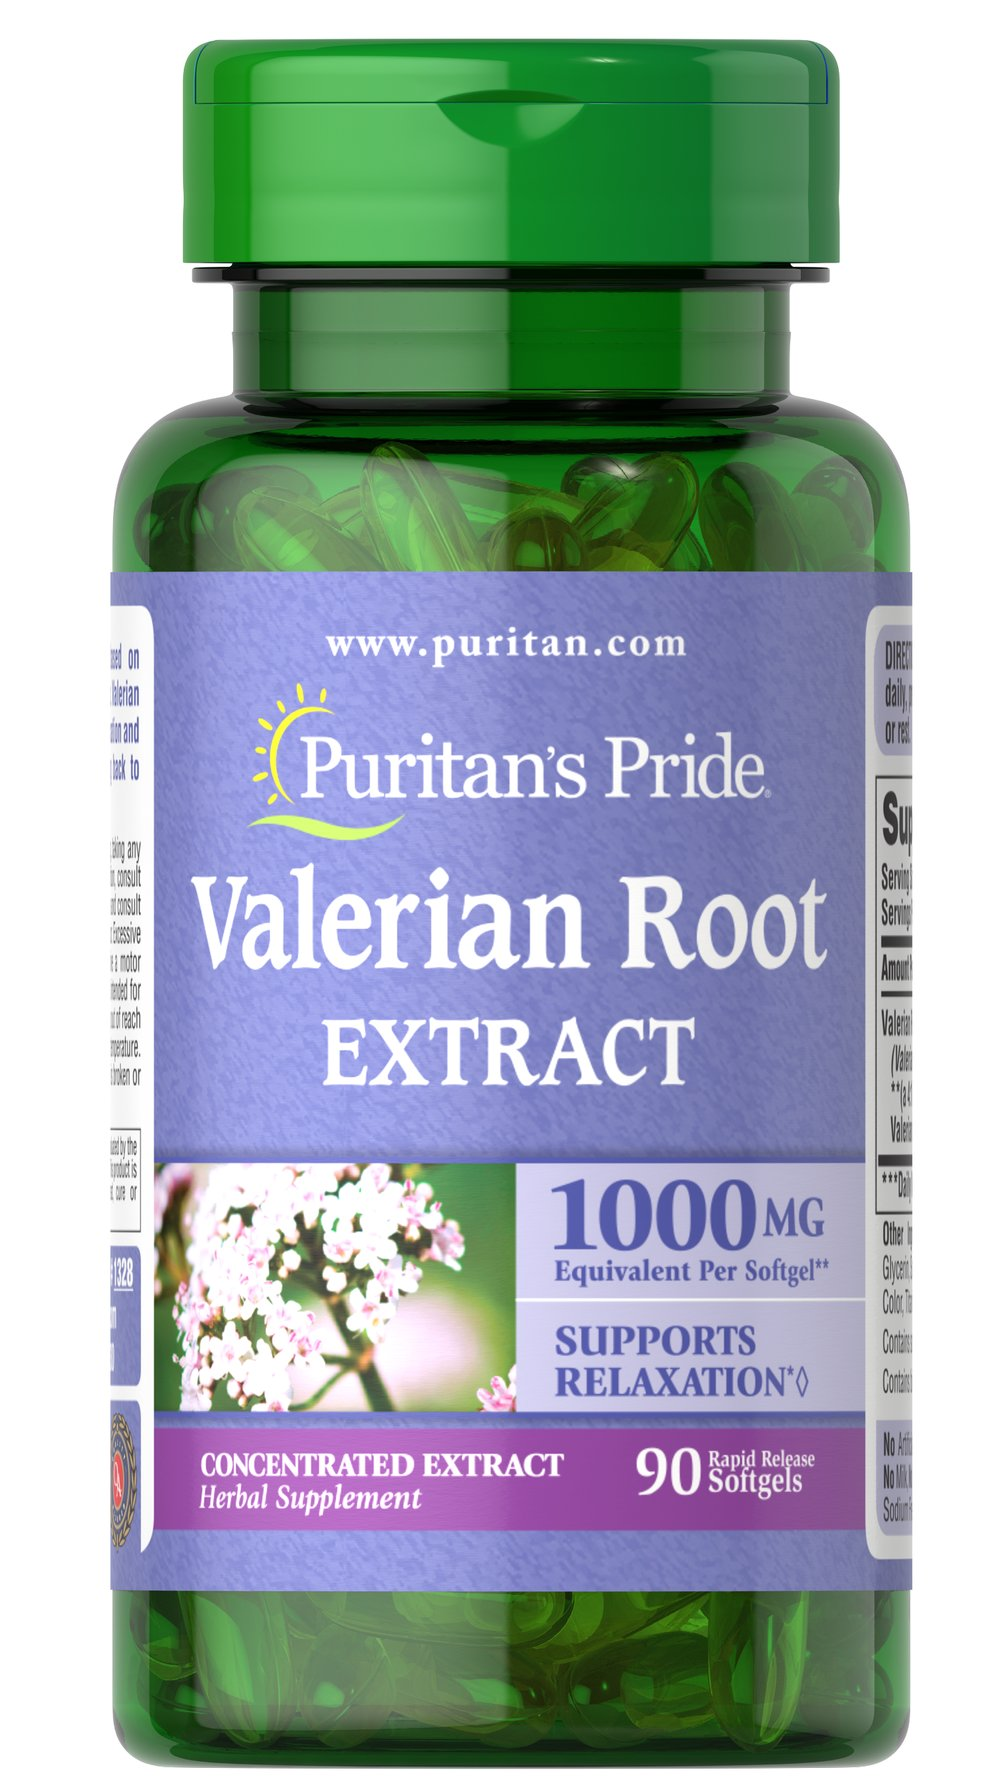 Valerian Root 1000 mg <p>Supports Relaxation**</p><p>Valerian works in harmony with your natural cycle to help promote relaxation, so you can leave your busy day behind and get the tranquil rest you deserve.**</p> 90 Softgels 1000 mg $13.99